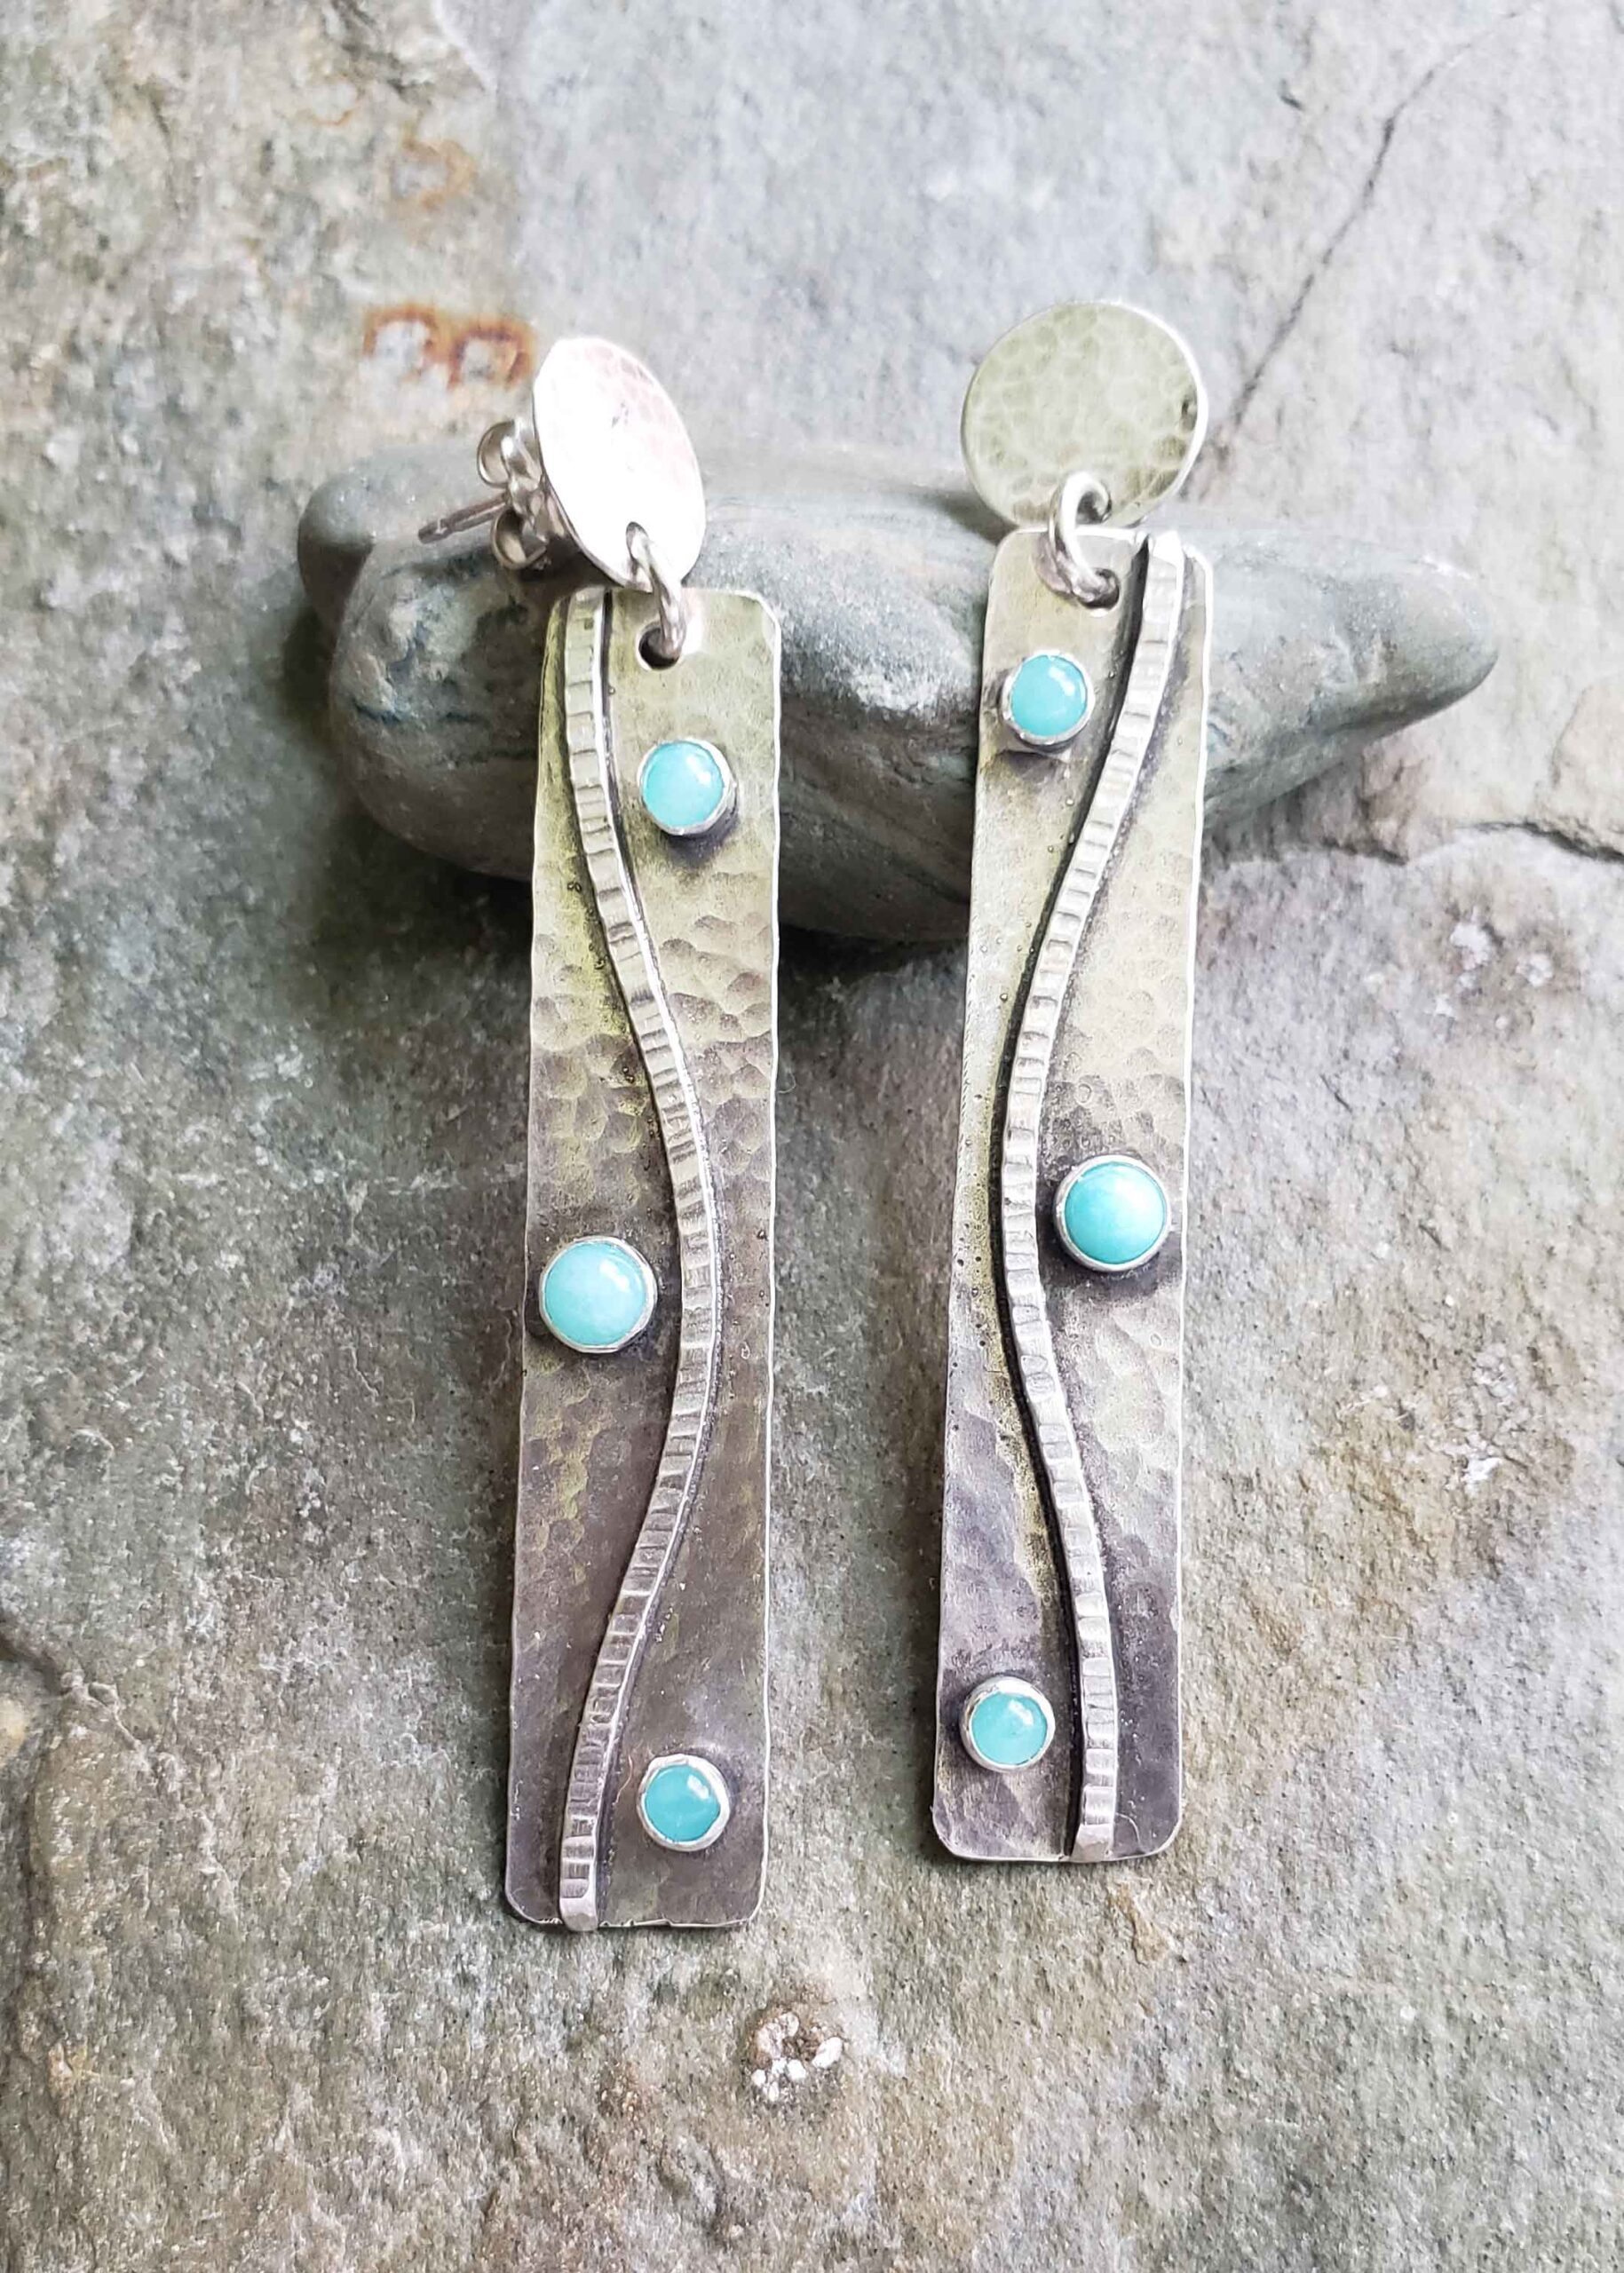 spring fling - silver and amazonite post earrings. Dona Miller Designs, LLC